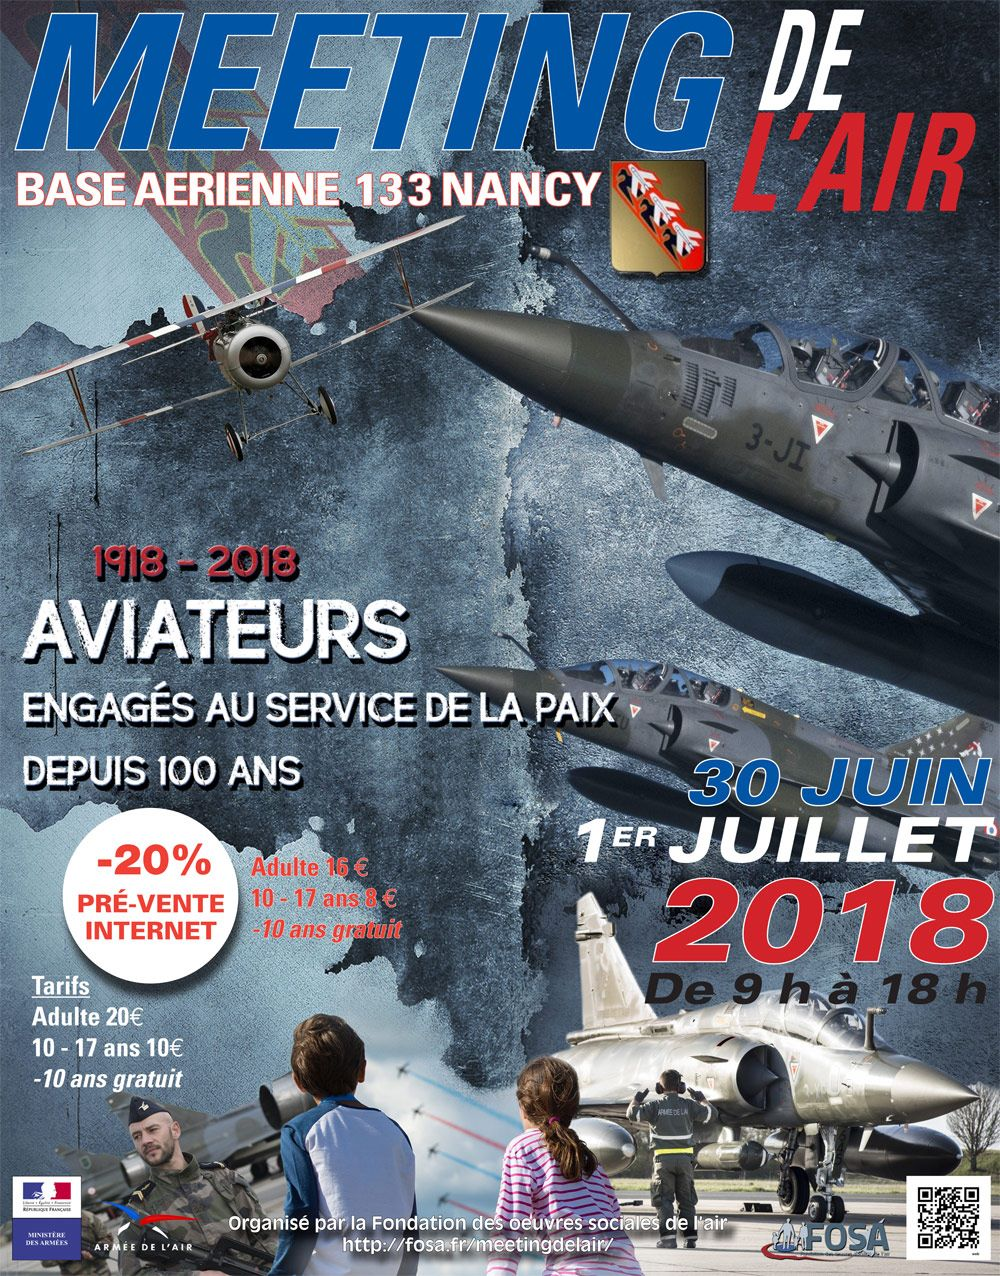 Meeting de l'Air Base Aerienne 133 Nancy - Ochey 2018